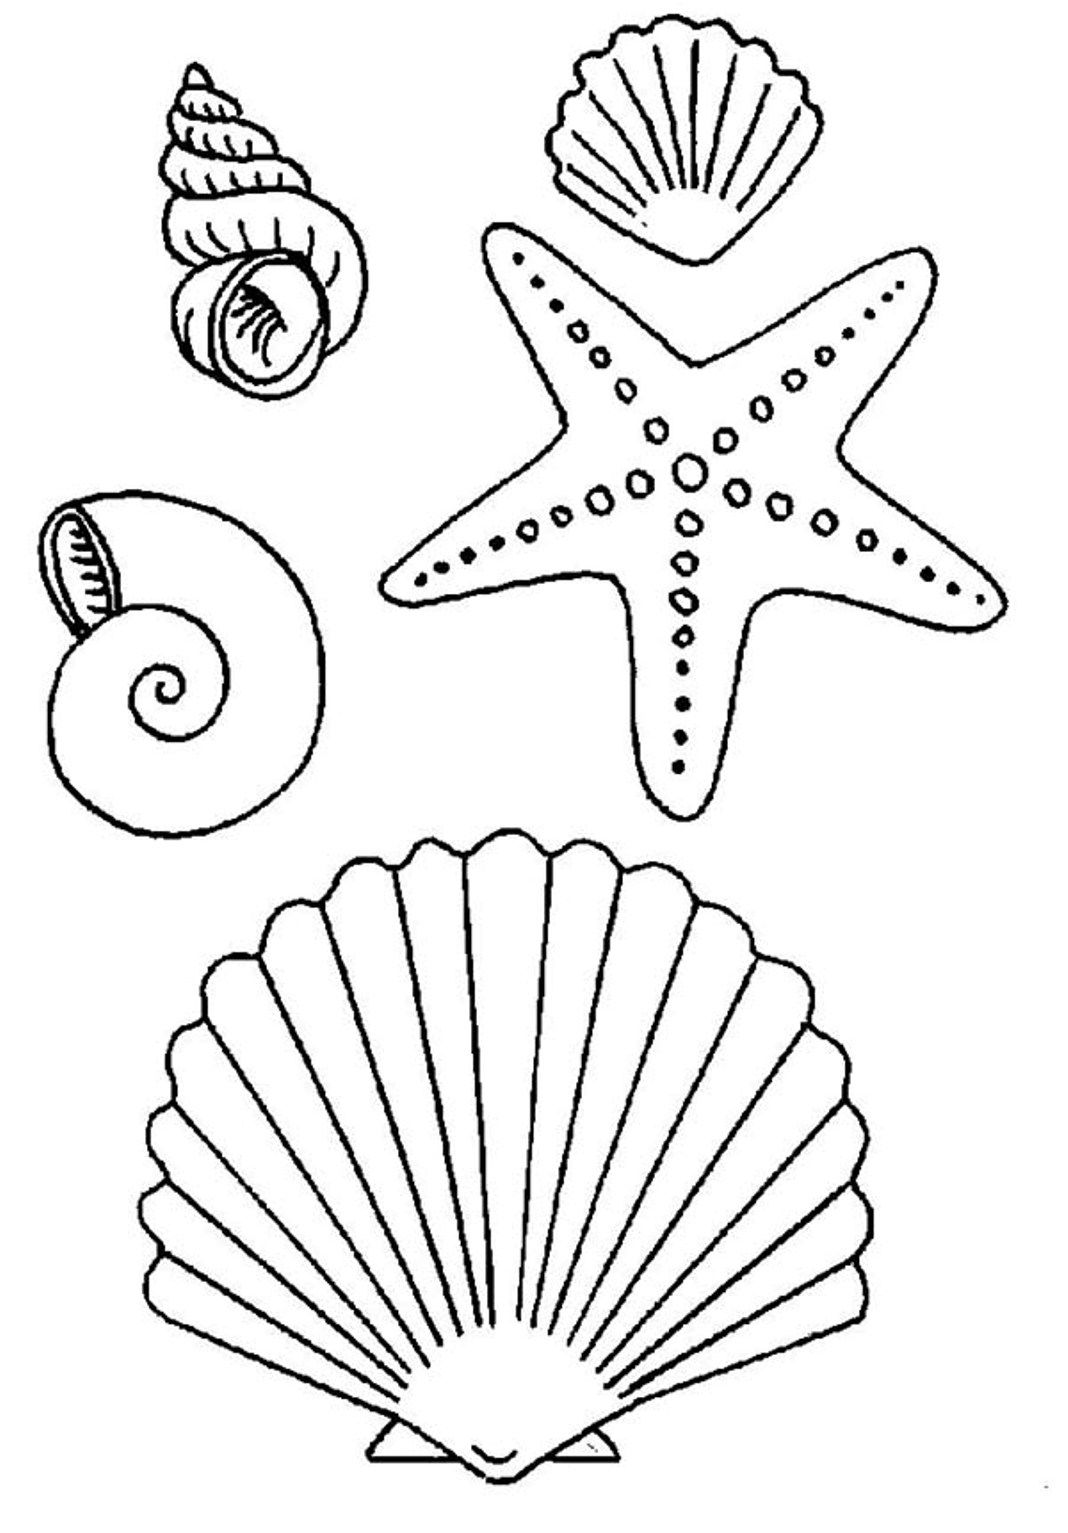 Images For > Simple Seashell Drawings Tattoos I Want Pinterest